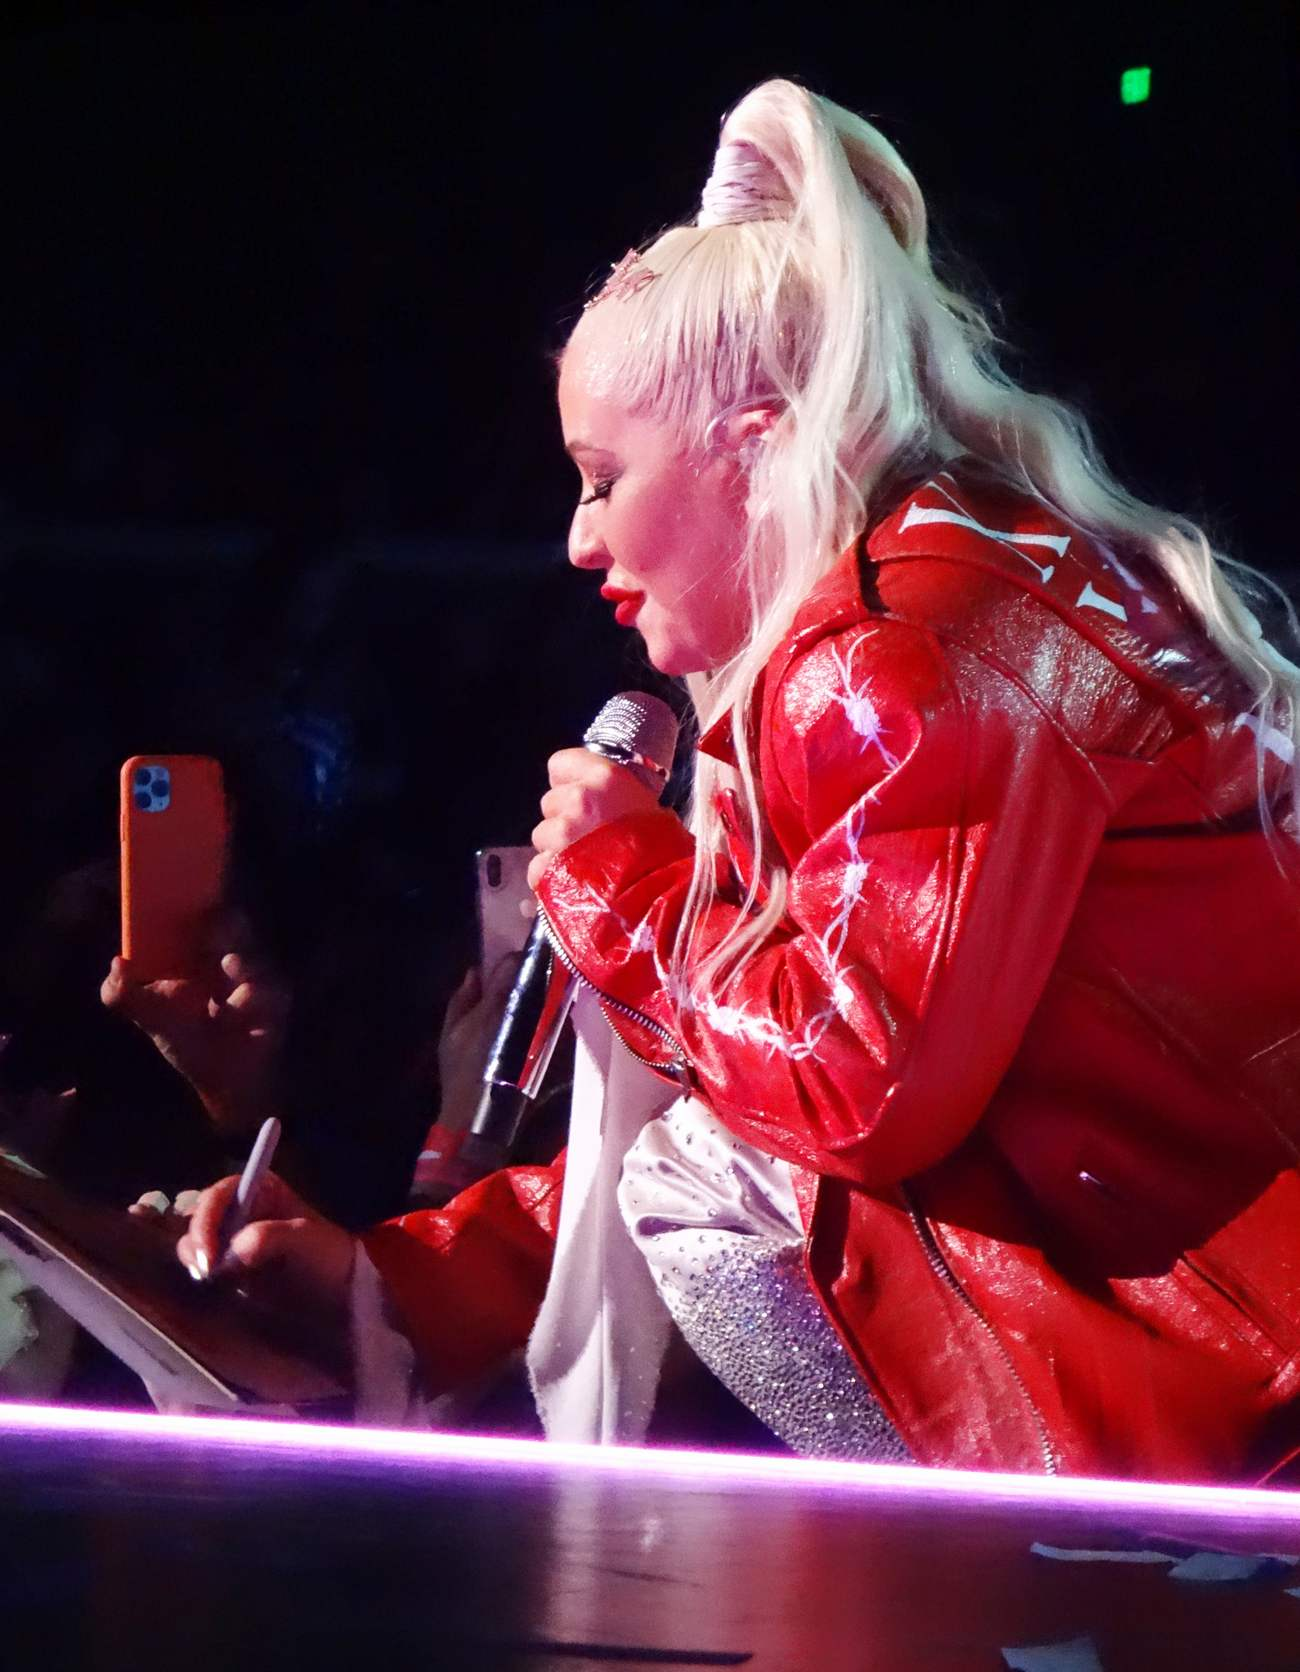 Christina_Aguilera_-_performing_for_a_New_Year_s_Eve_Performance_at_Zappos_Theatre_in_Las_Vegas2C_NV__12312019-45.jpg